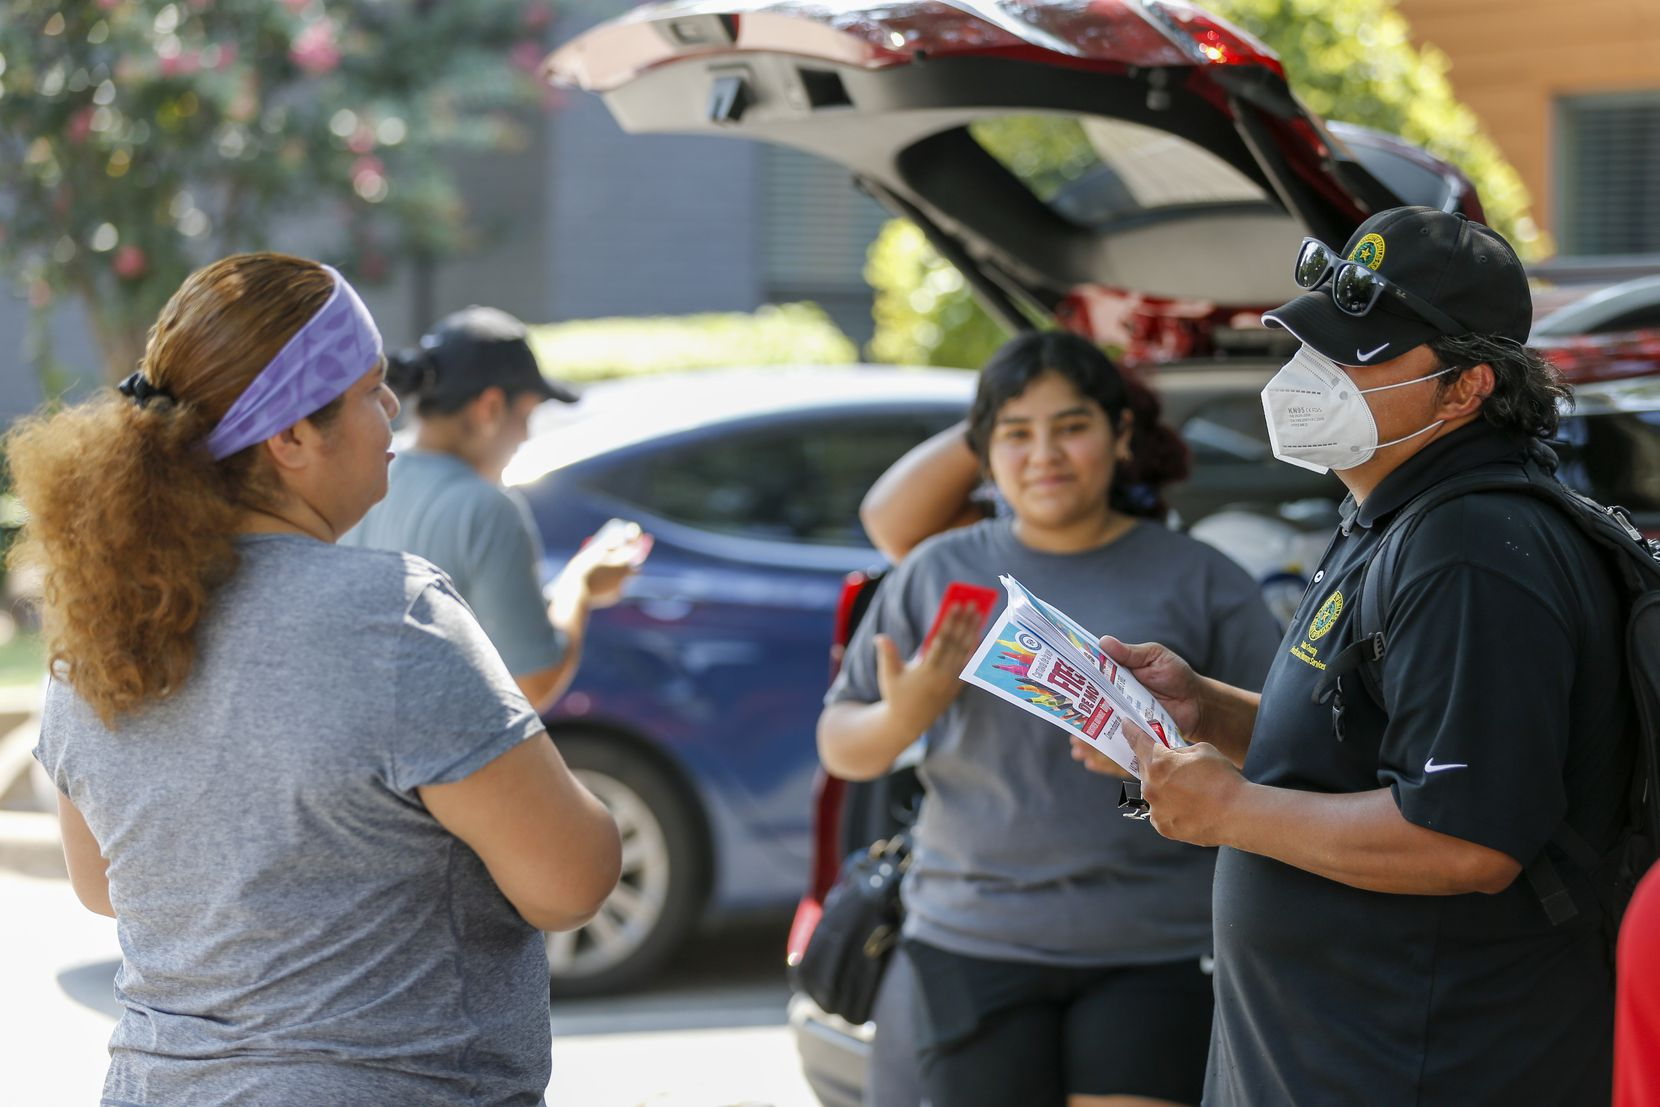 Armando Martinez, Dallas County Health & Human Services community liaison, speaks with residents about a back-to-school immunizations and COVID-19 vaccine clinic on Friday, July 30, 2021, in Dallas. (Elias Valverde II/The Dallas Morning News)